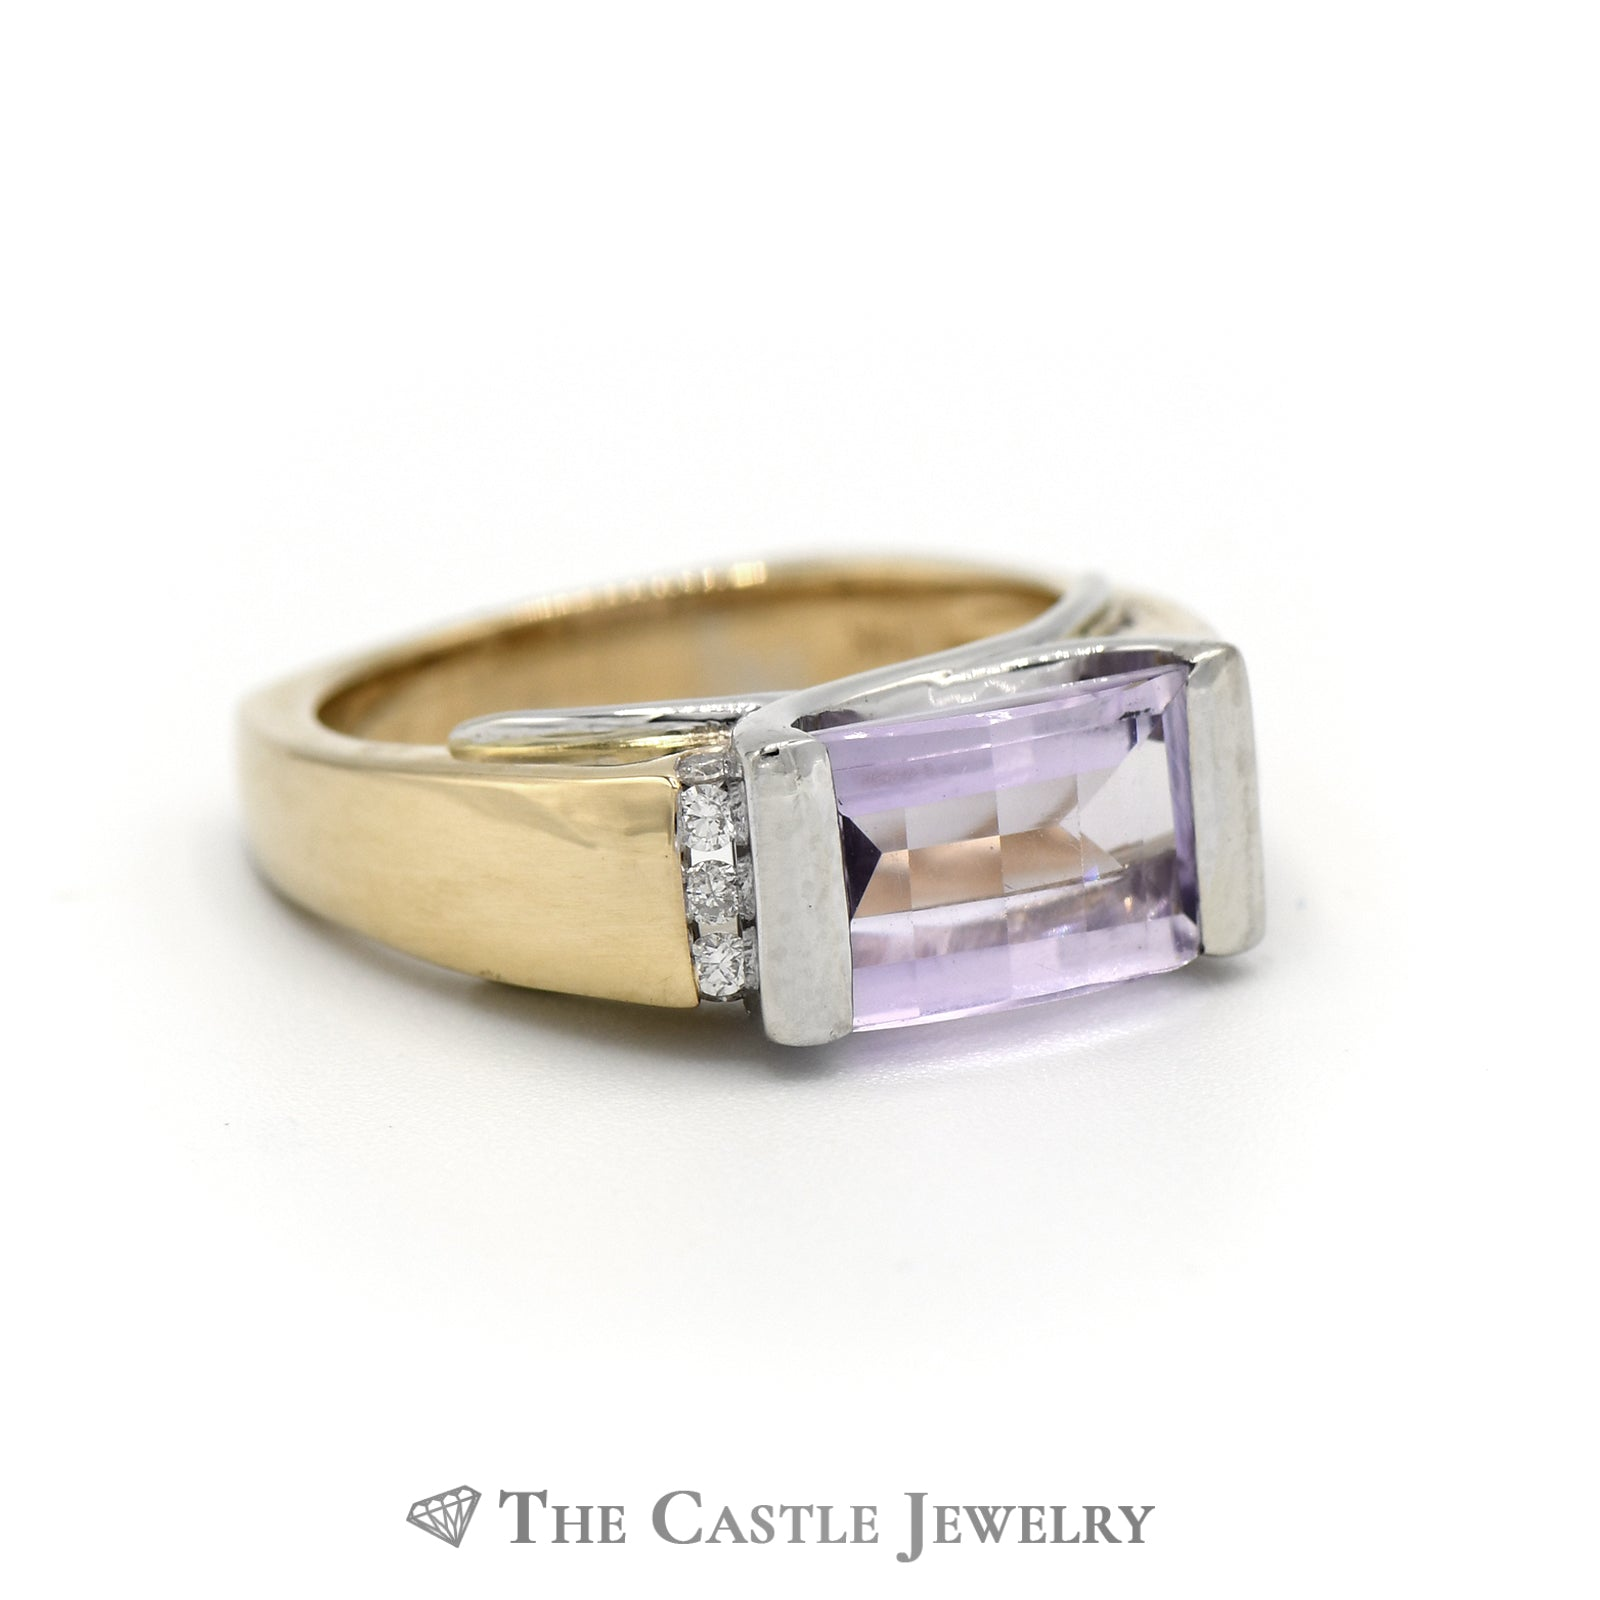 Fancy Cut Amethyst Ring With .09cttw Diamonds 14K Yellow Gold-2